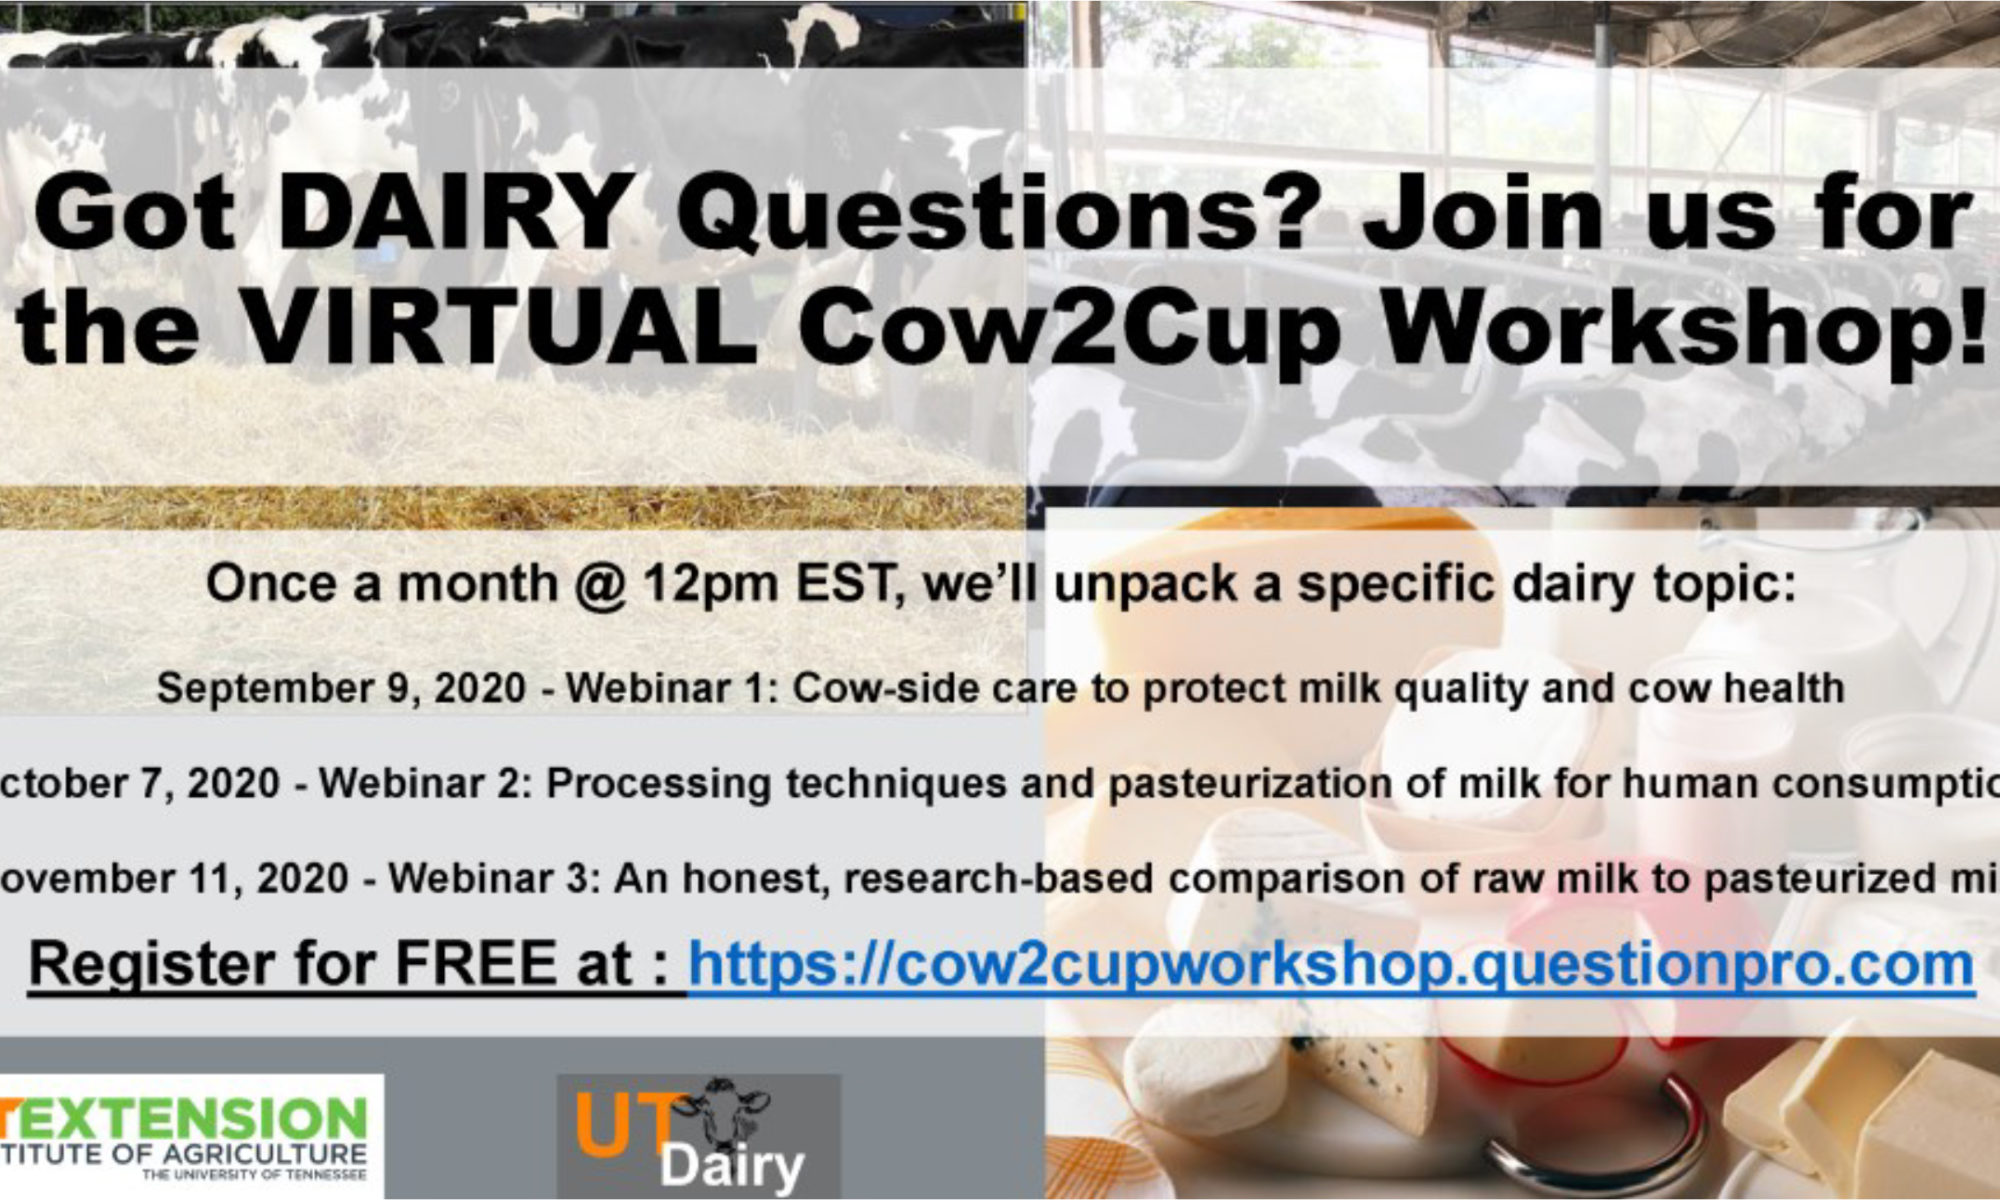 Got DAIRY Questions? Join us for the Virtual Cow2Cup Workshop! Once a month @ 12 PM EST, we'll unpack a specific dairy topic: September 2, 2020 – Webinar 1: Cow-side care to protect milk quality and cow heath October 7, 2020 – Webinar 2: Processing techniques and pasteurization of milk for human consumption November 11, 2020 – Webinar 3: An honest, research-based comparison of raw milk to pasteurized milk. Register for FREE at: https://cow2cupworkshop.questionpro.com